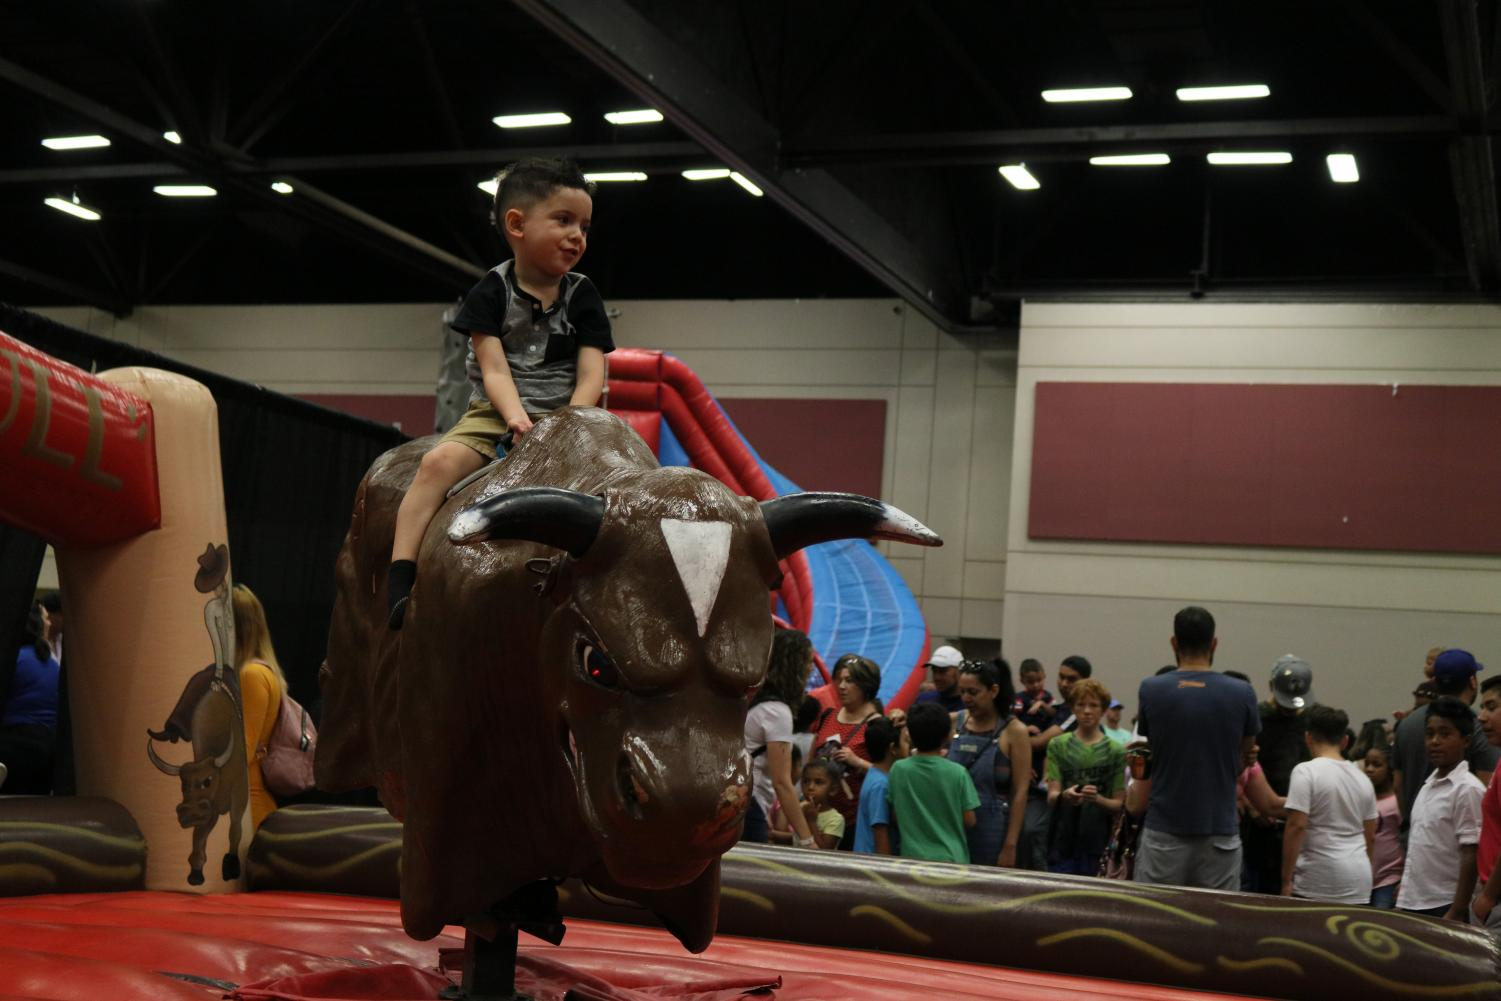 Kid+rides+a+mechanic+bull+during+the+Ice+Cream+Festival+in+El+Paso+Convention+Center+on+Sunday%2C+June+20%2C+2019.+During+the+event%2C+kids+had+fun+through+different+activities+and+attractions.